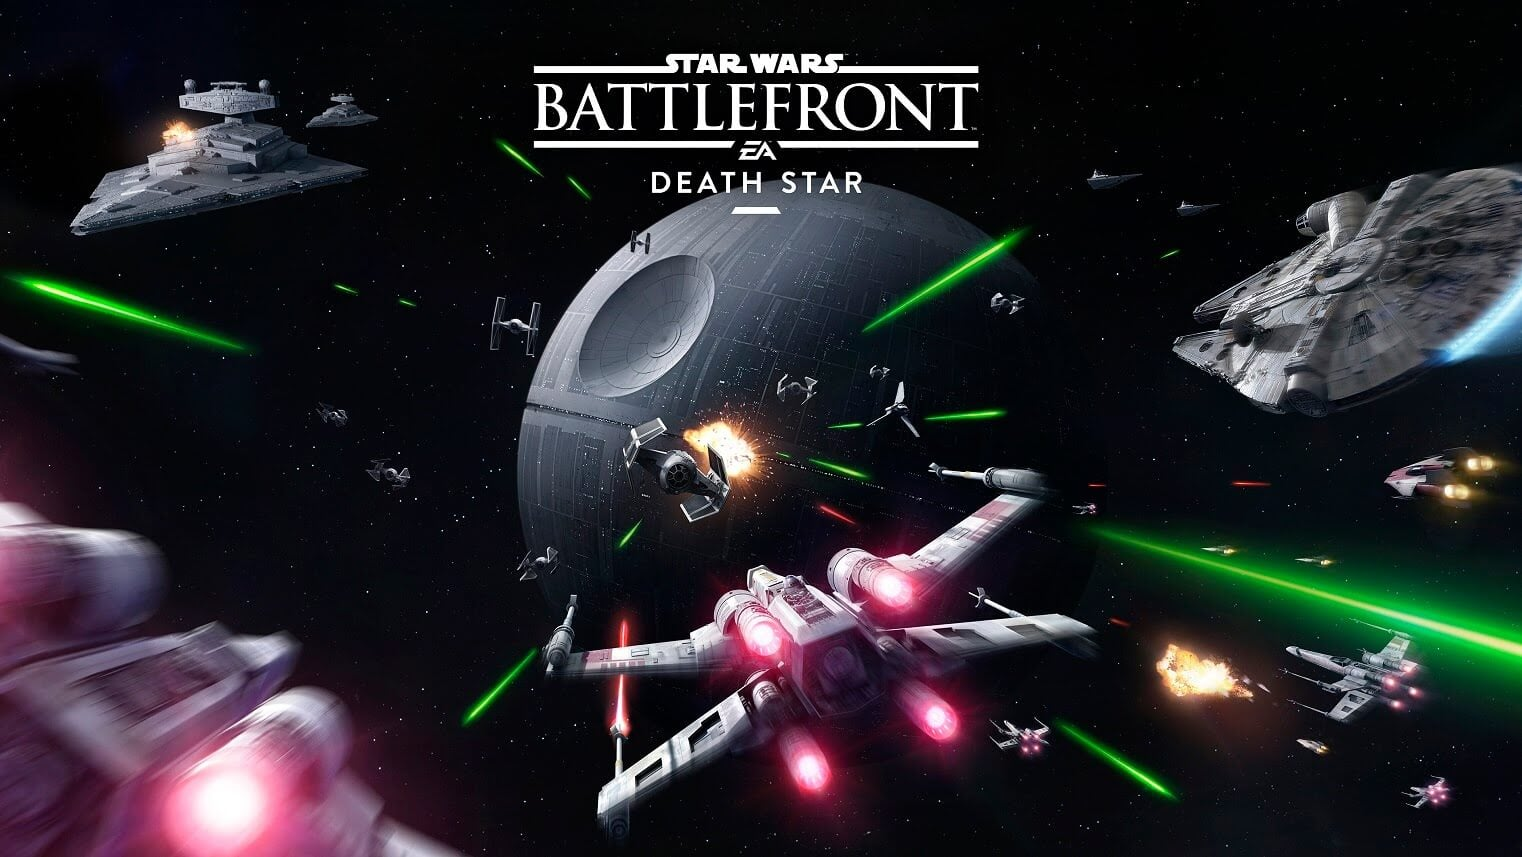 Star wars battlefront season pass currently free for xbox live gold star wars battlefront season pass currently free for xbox live gold members nvjuhfo Images